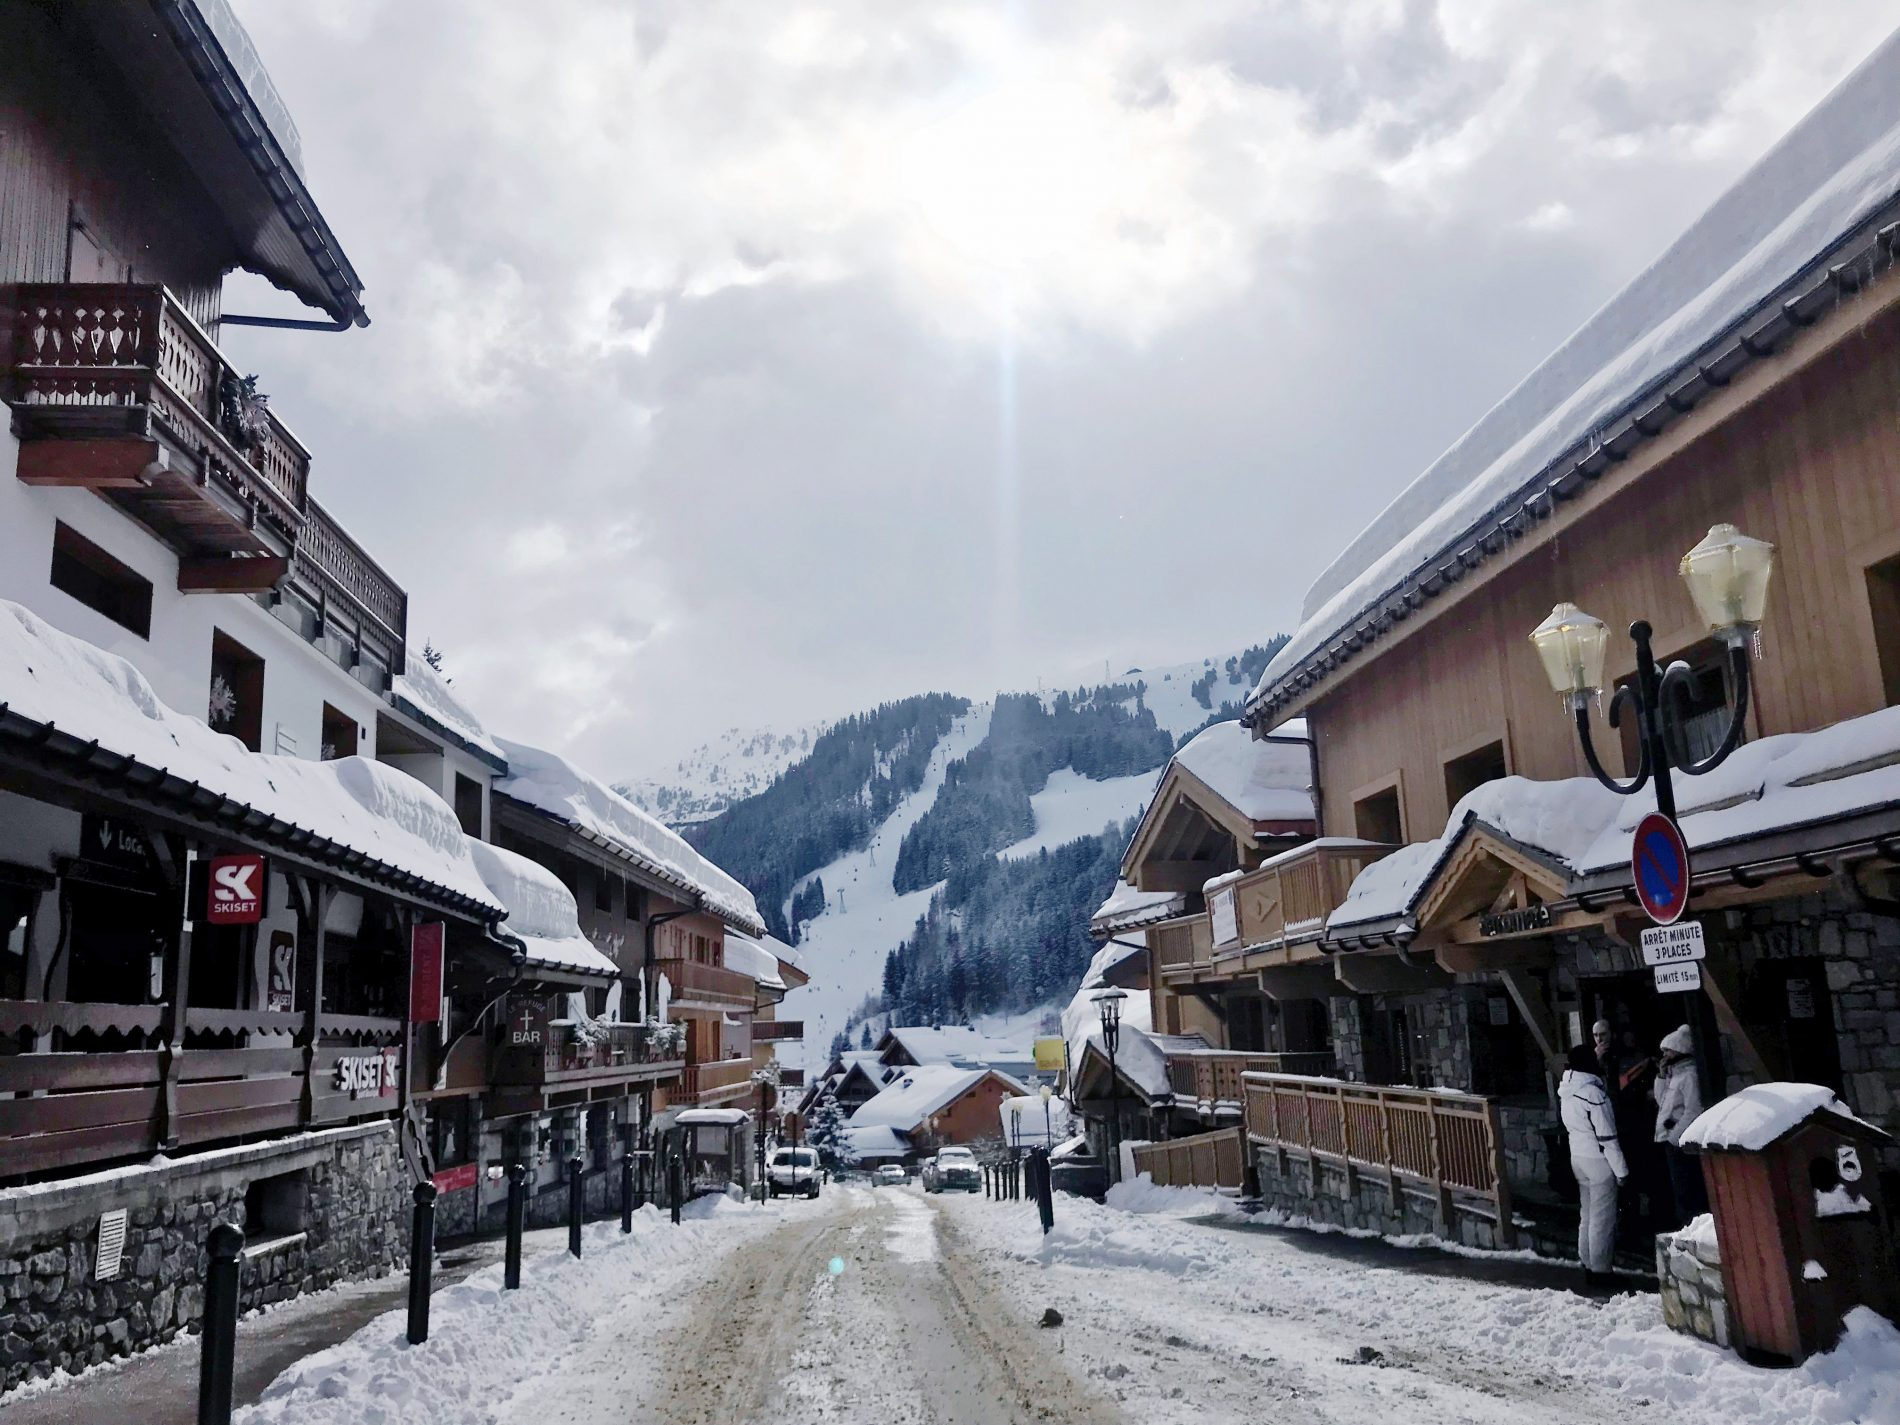 Les 3 Vallées: Having the Best Day in Méribel, France as a 20-Something